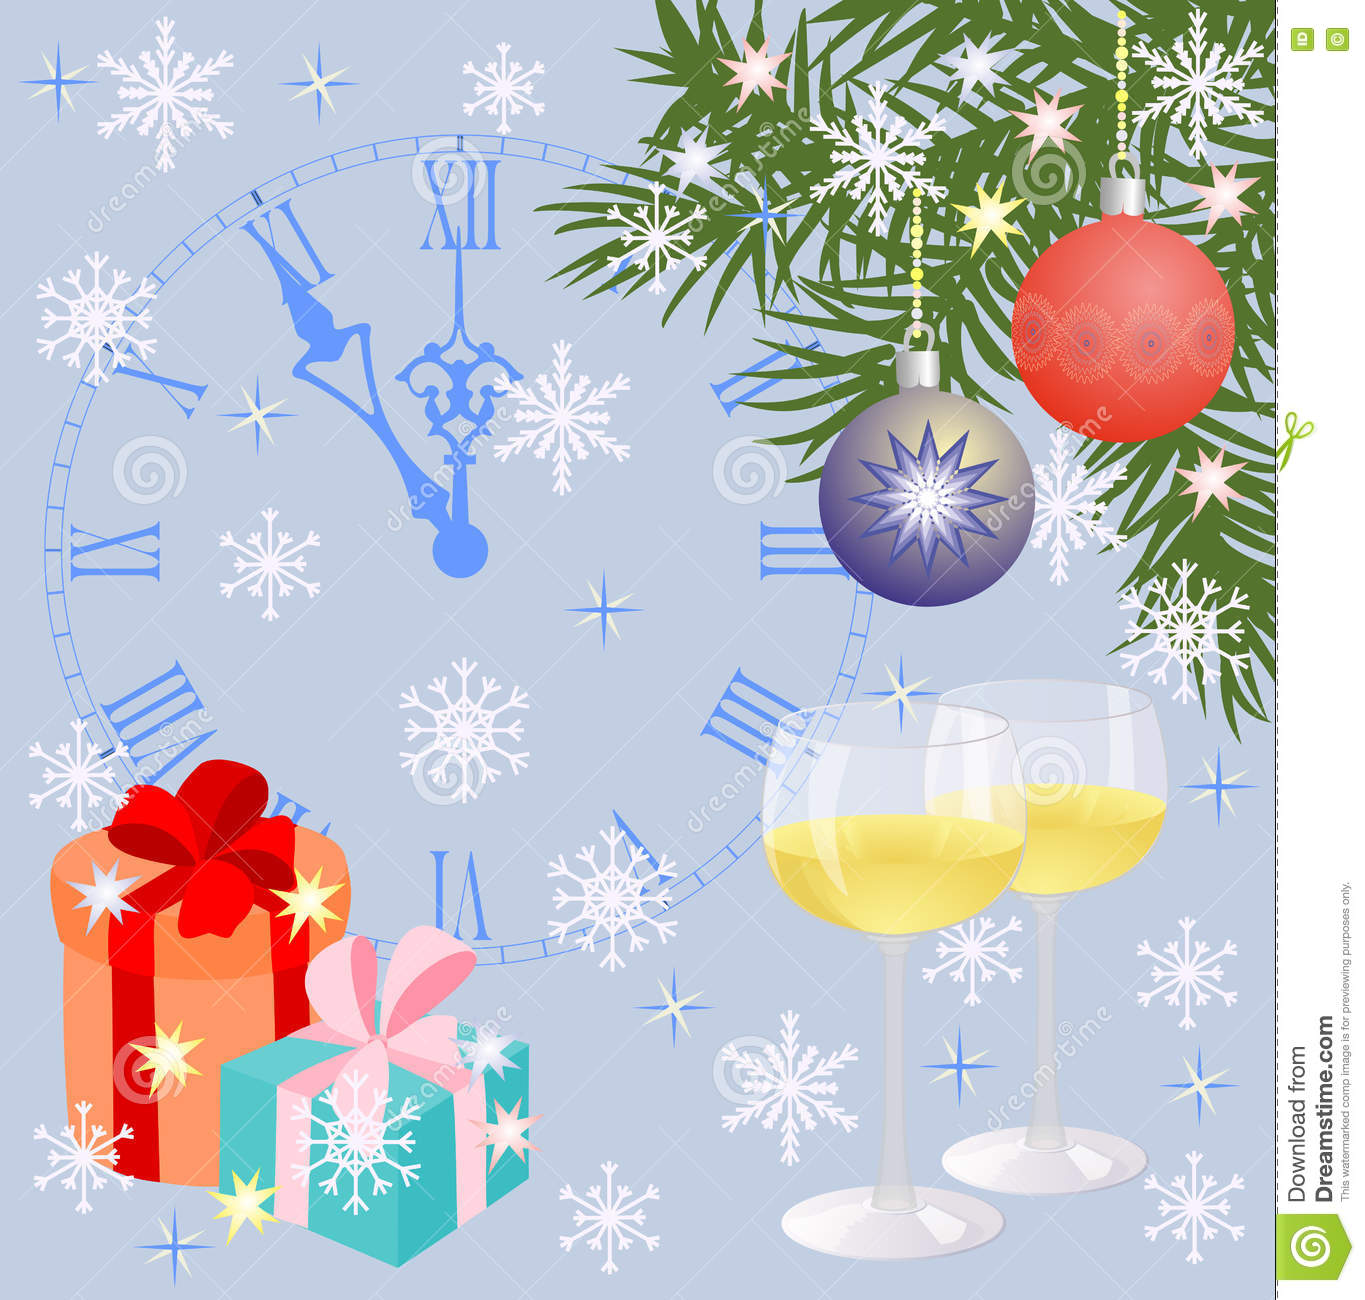 christmas composition with gifts christmas decorations clocks and glasses of wine